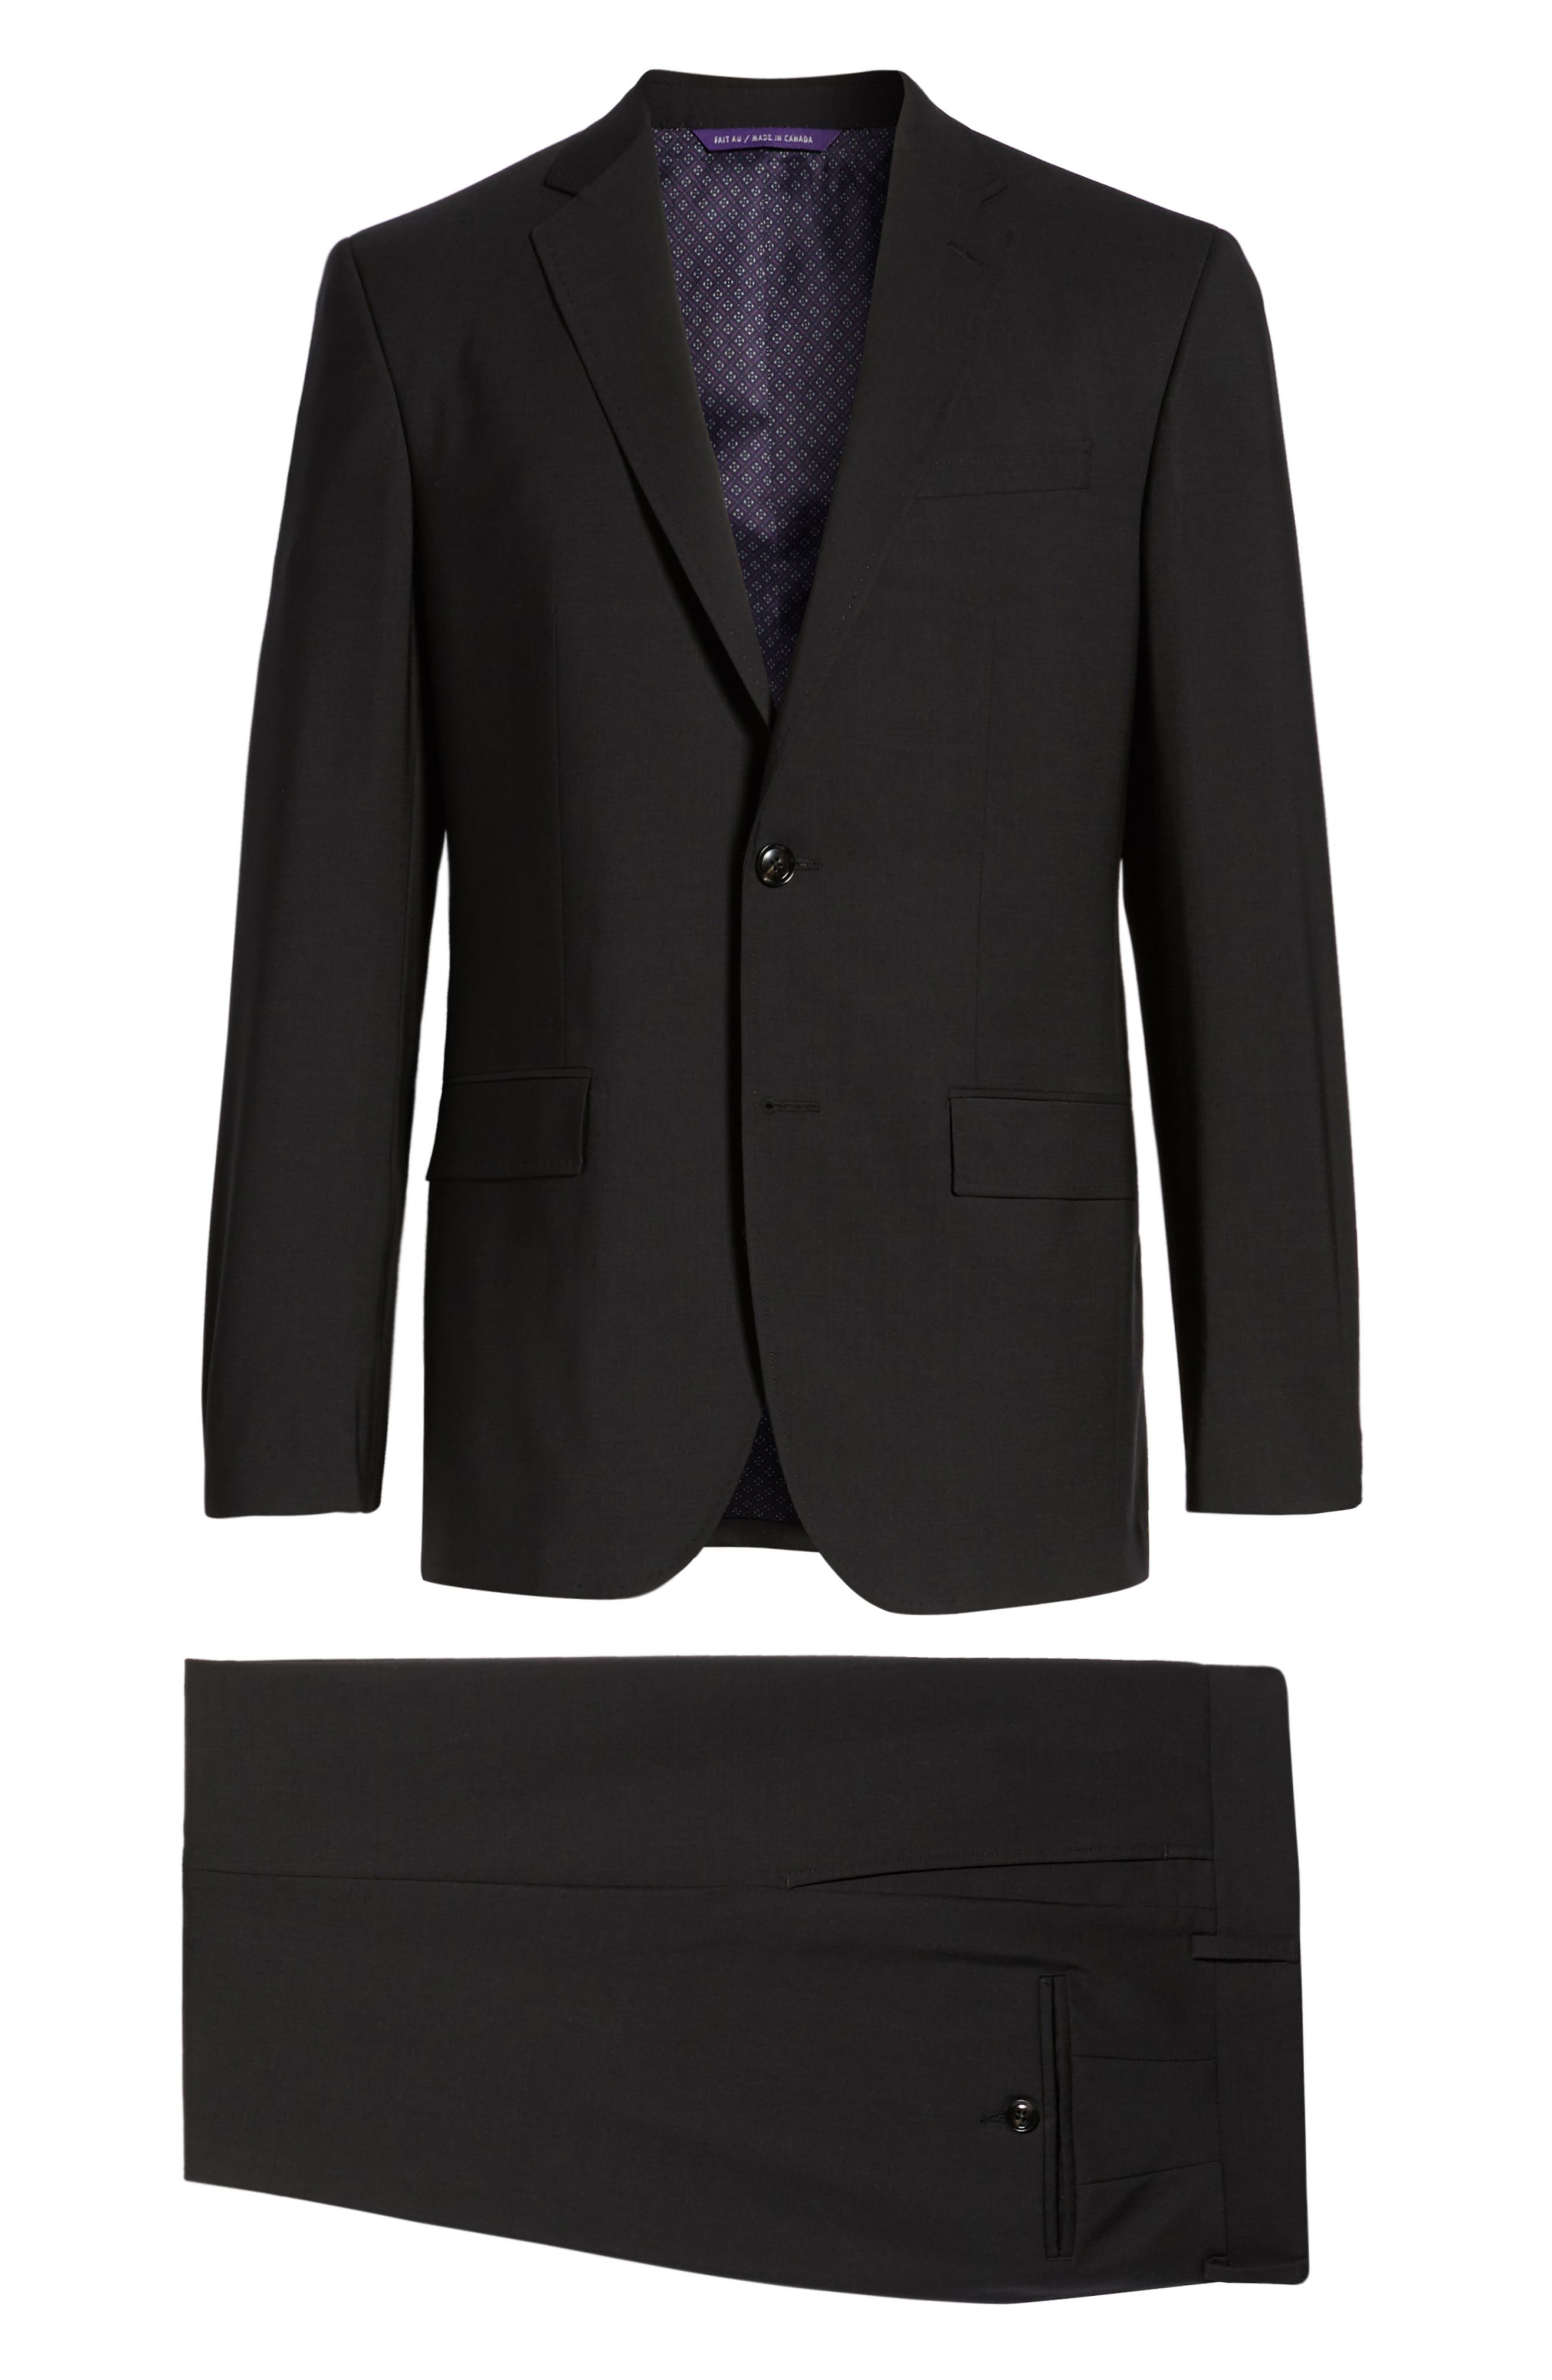 TED BAKER LONDON, Jay Trim Fit Solid Wool Suit, Alternate thumbnail 9, color, BLACK